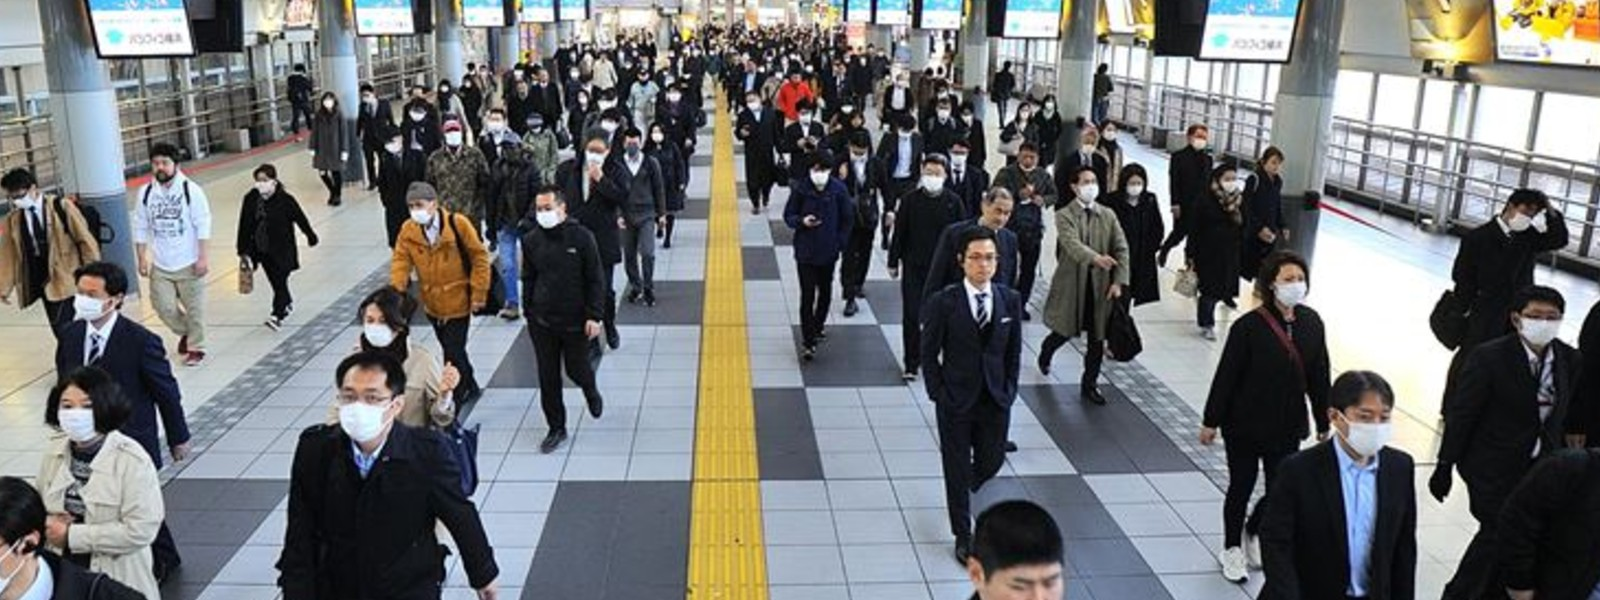 Japan has lifted its state of emergency, having brought the virus under control